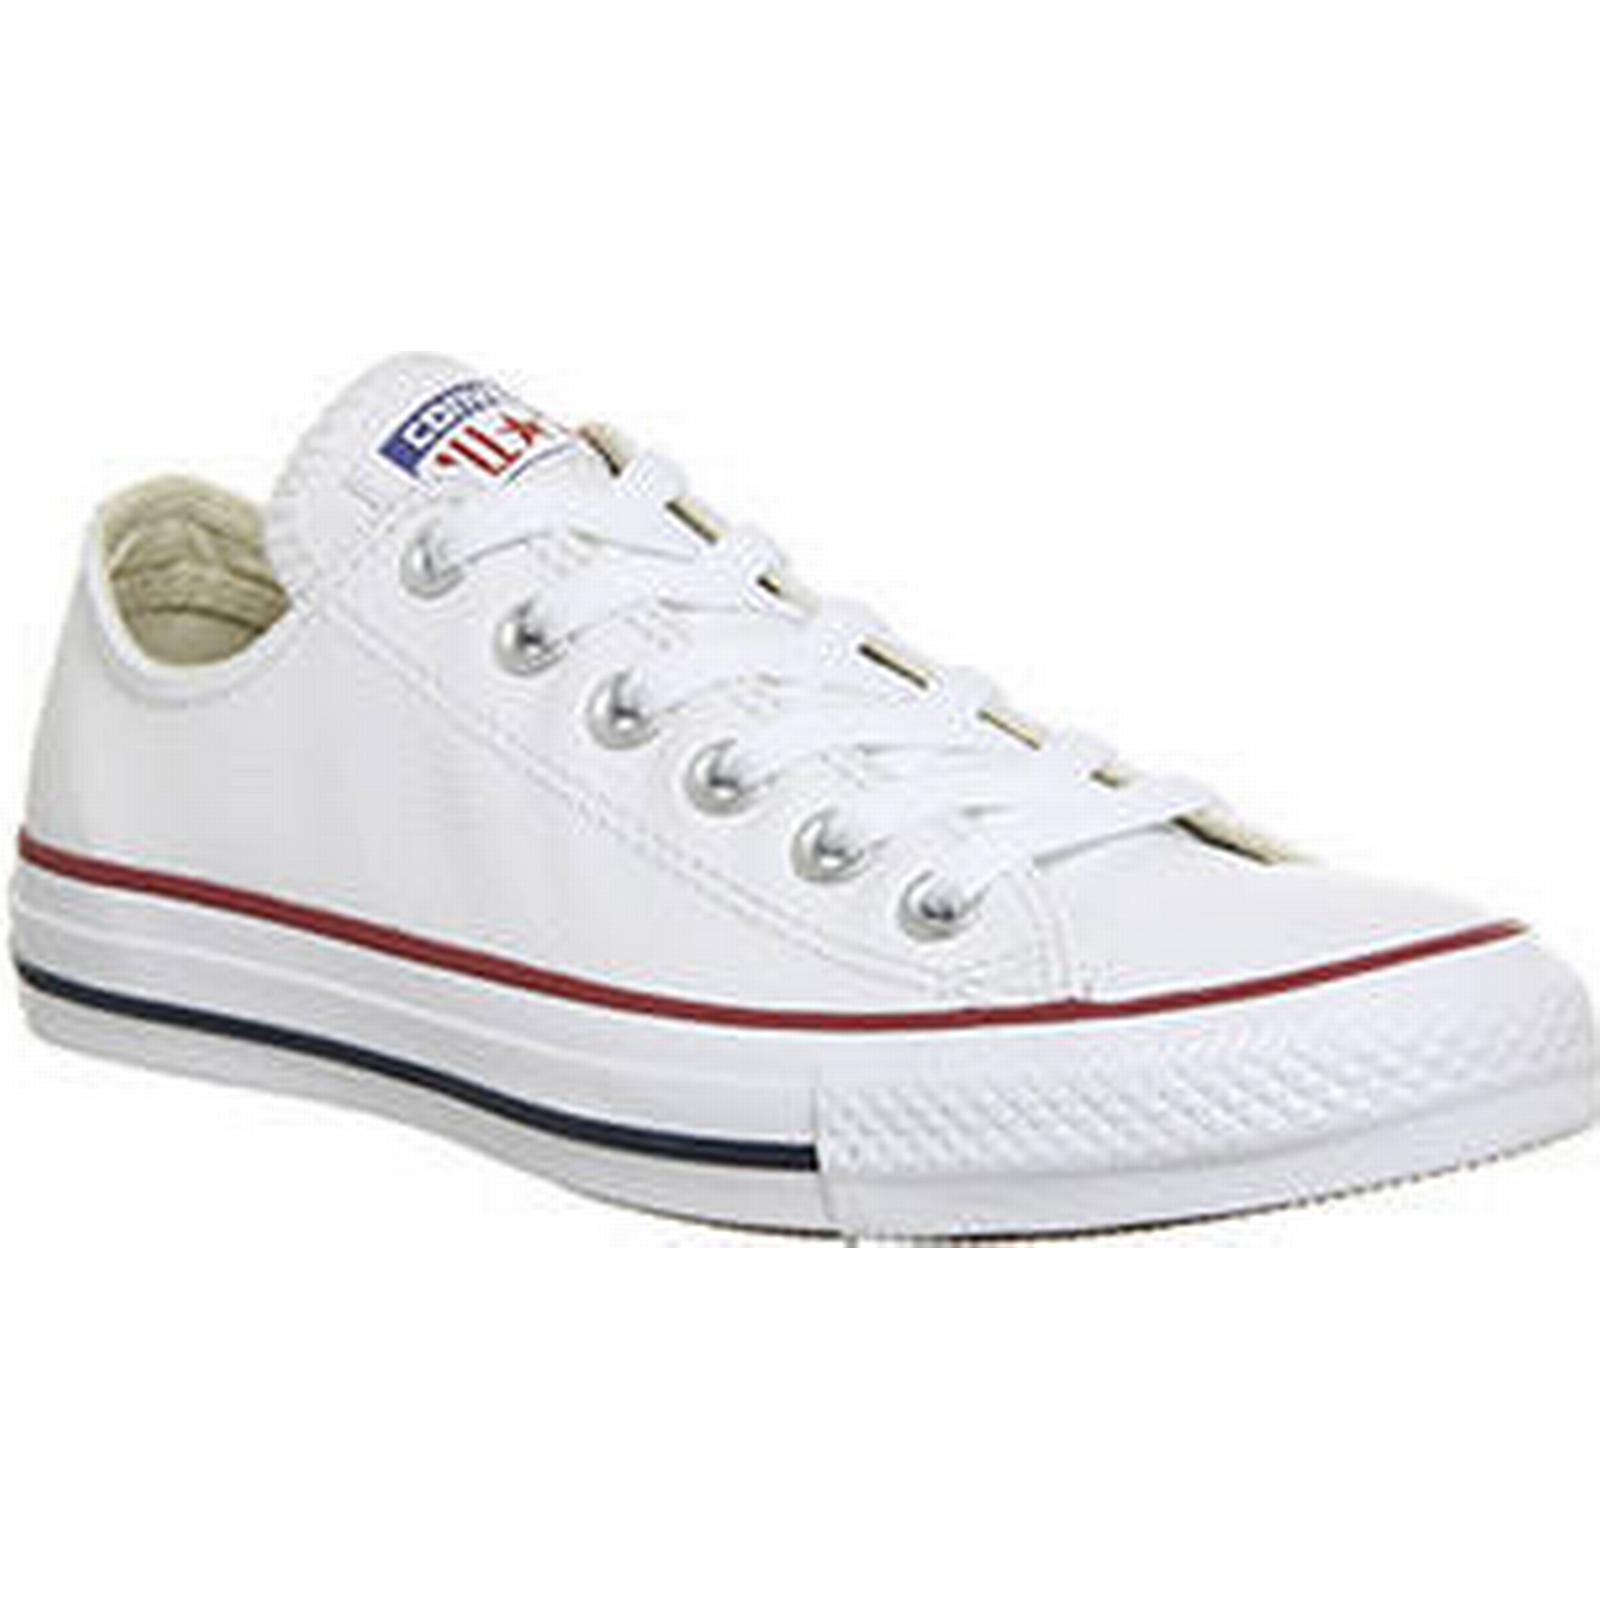 Converse All Star Leather Low Leather Star OPTICAL WHITE 09a79f